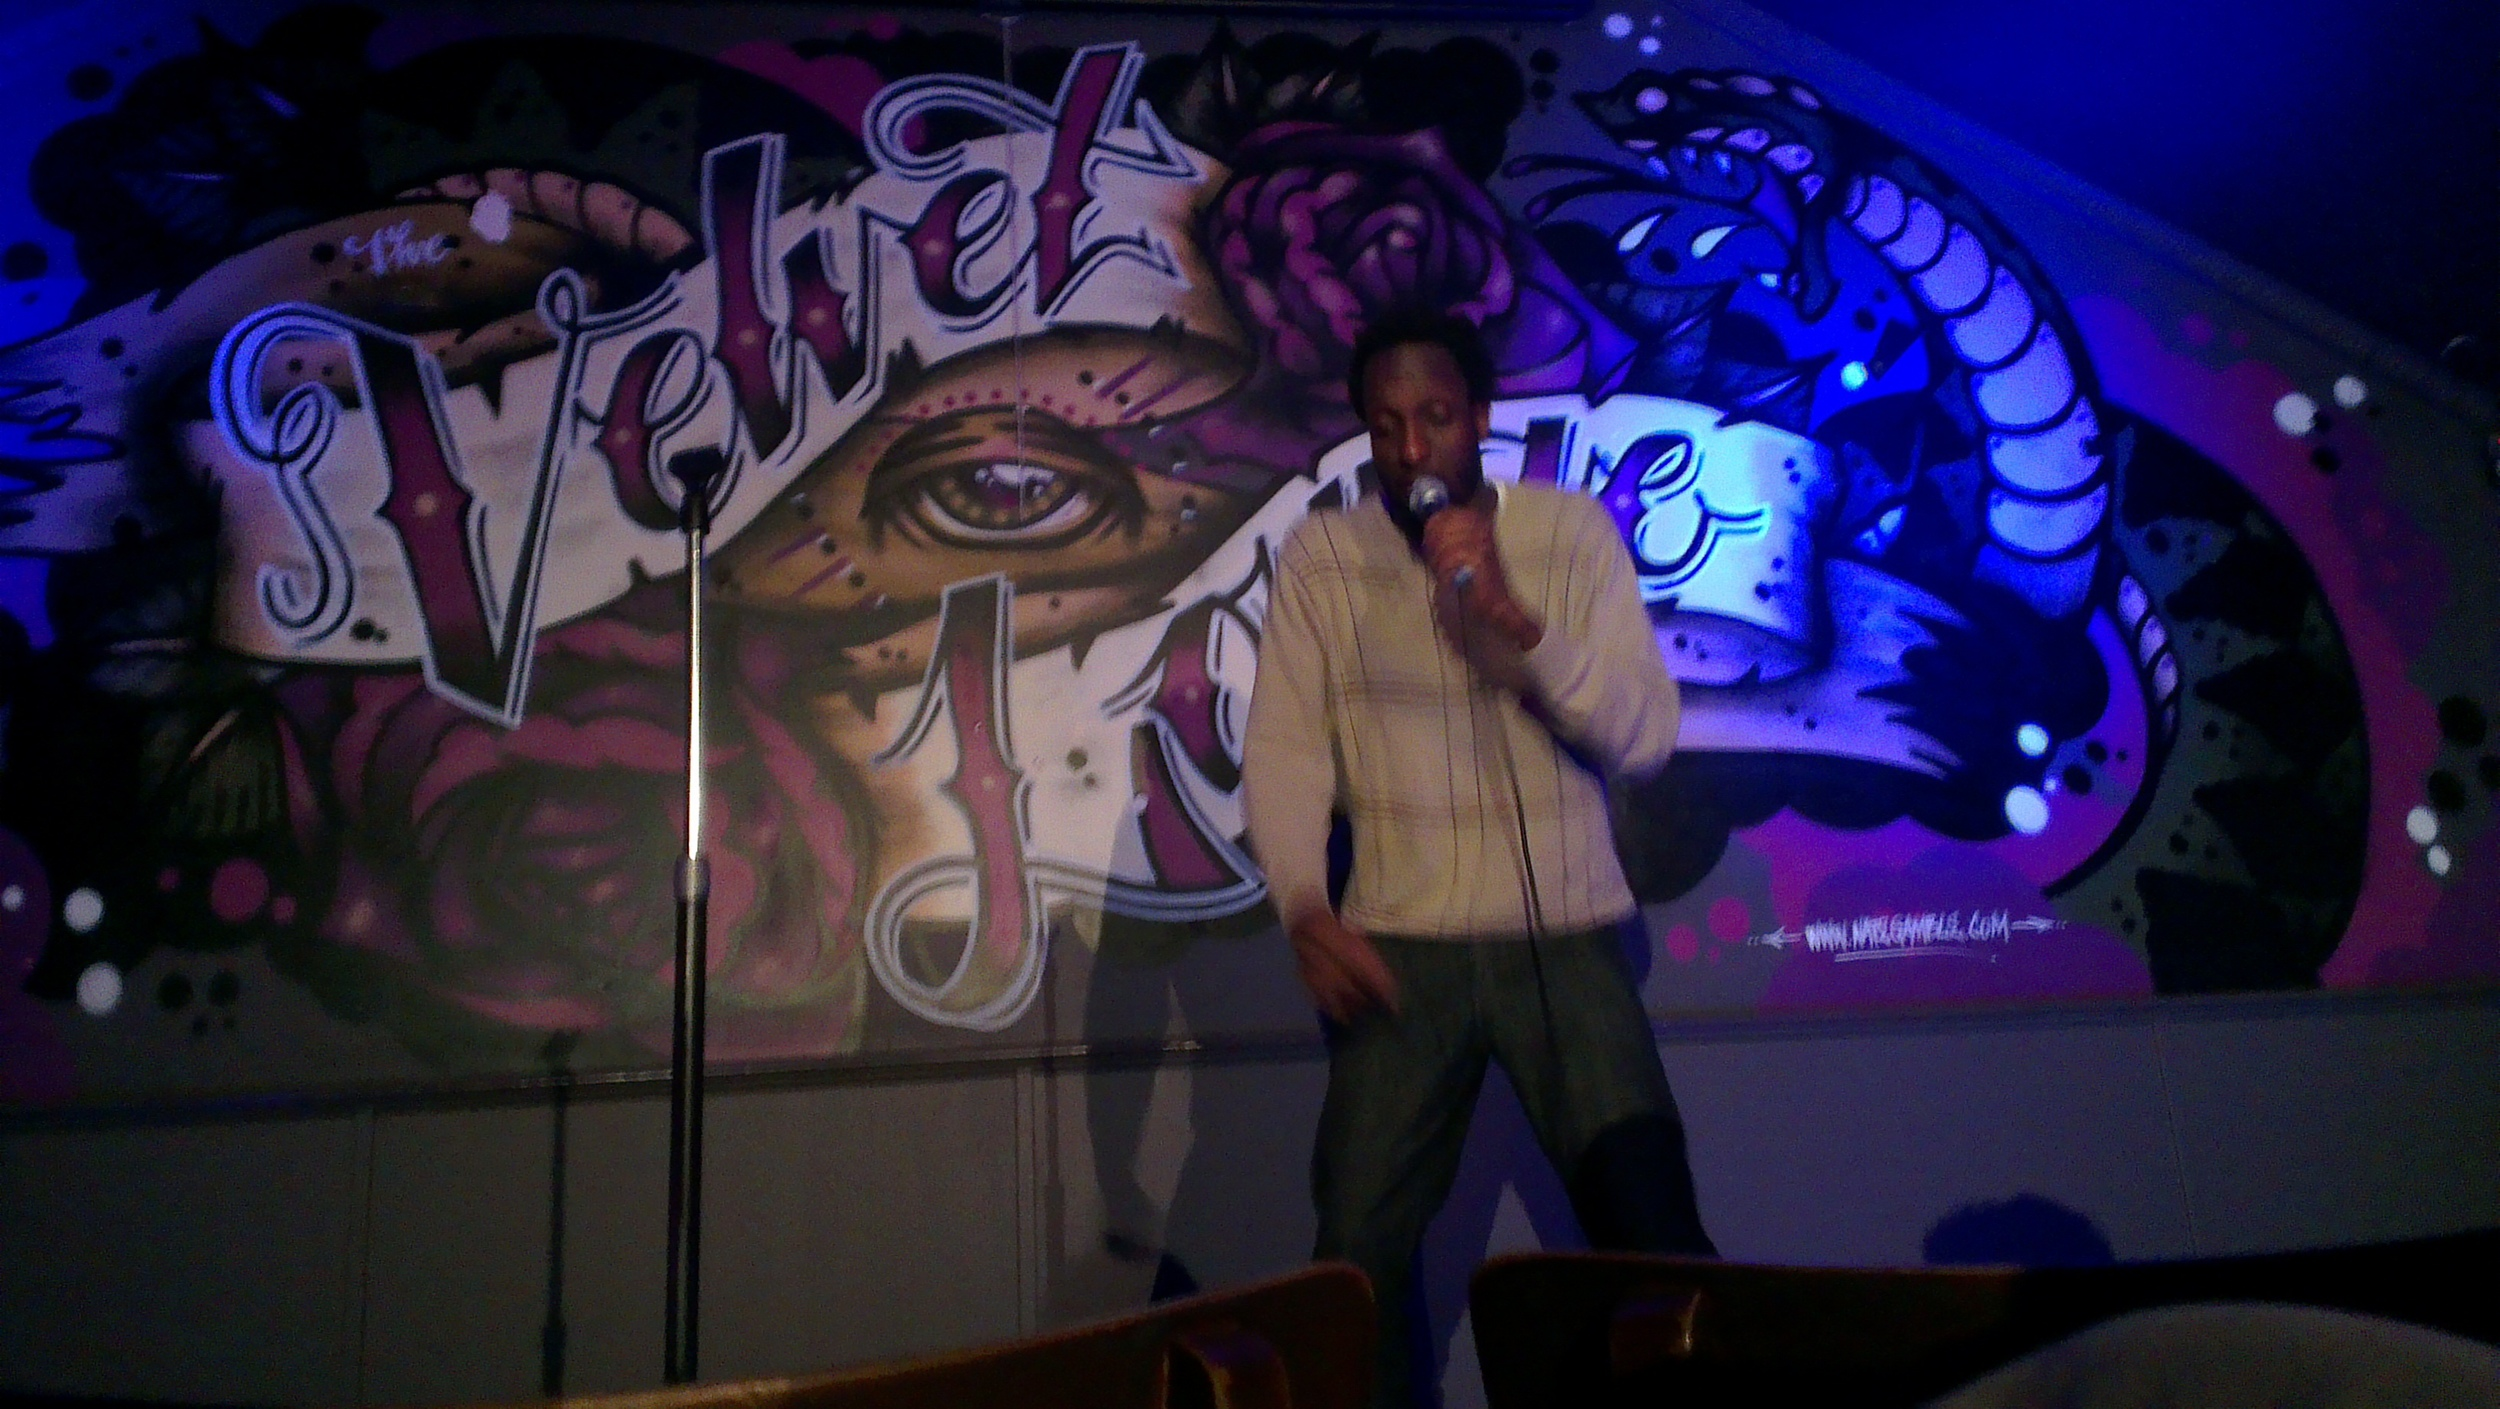 His on-stage presence is fantastic for such a young comedian!